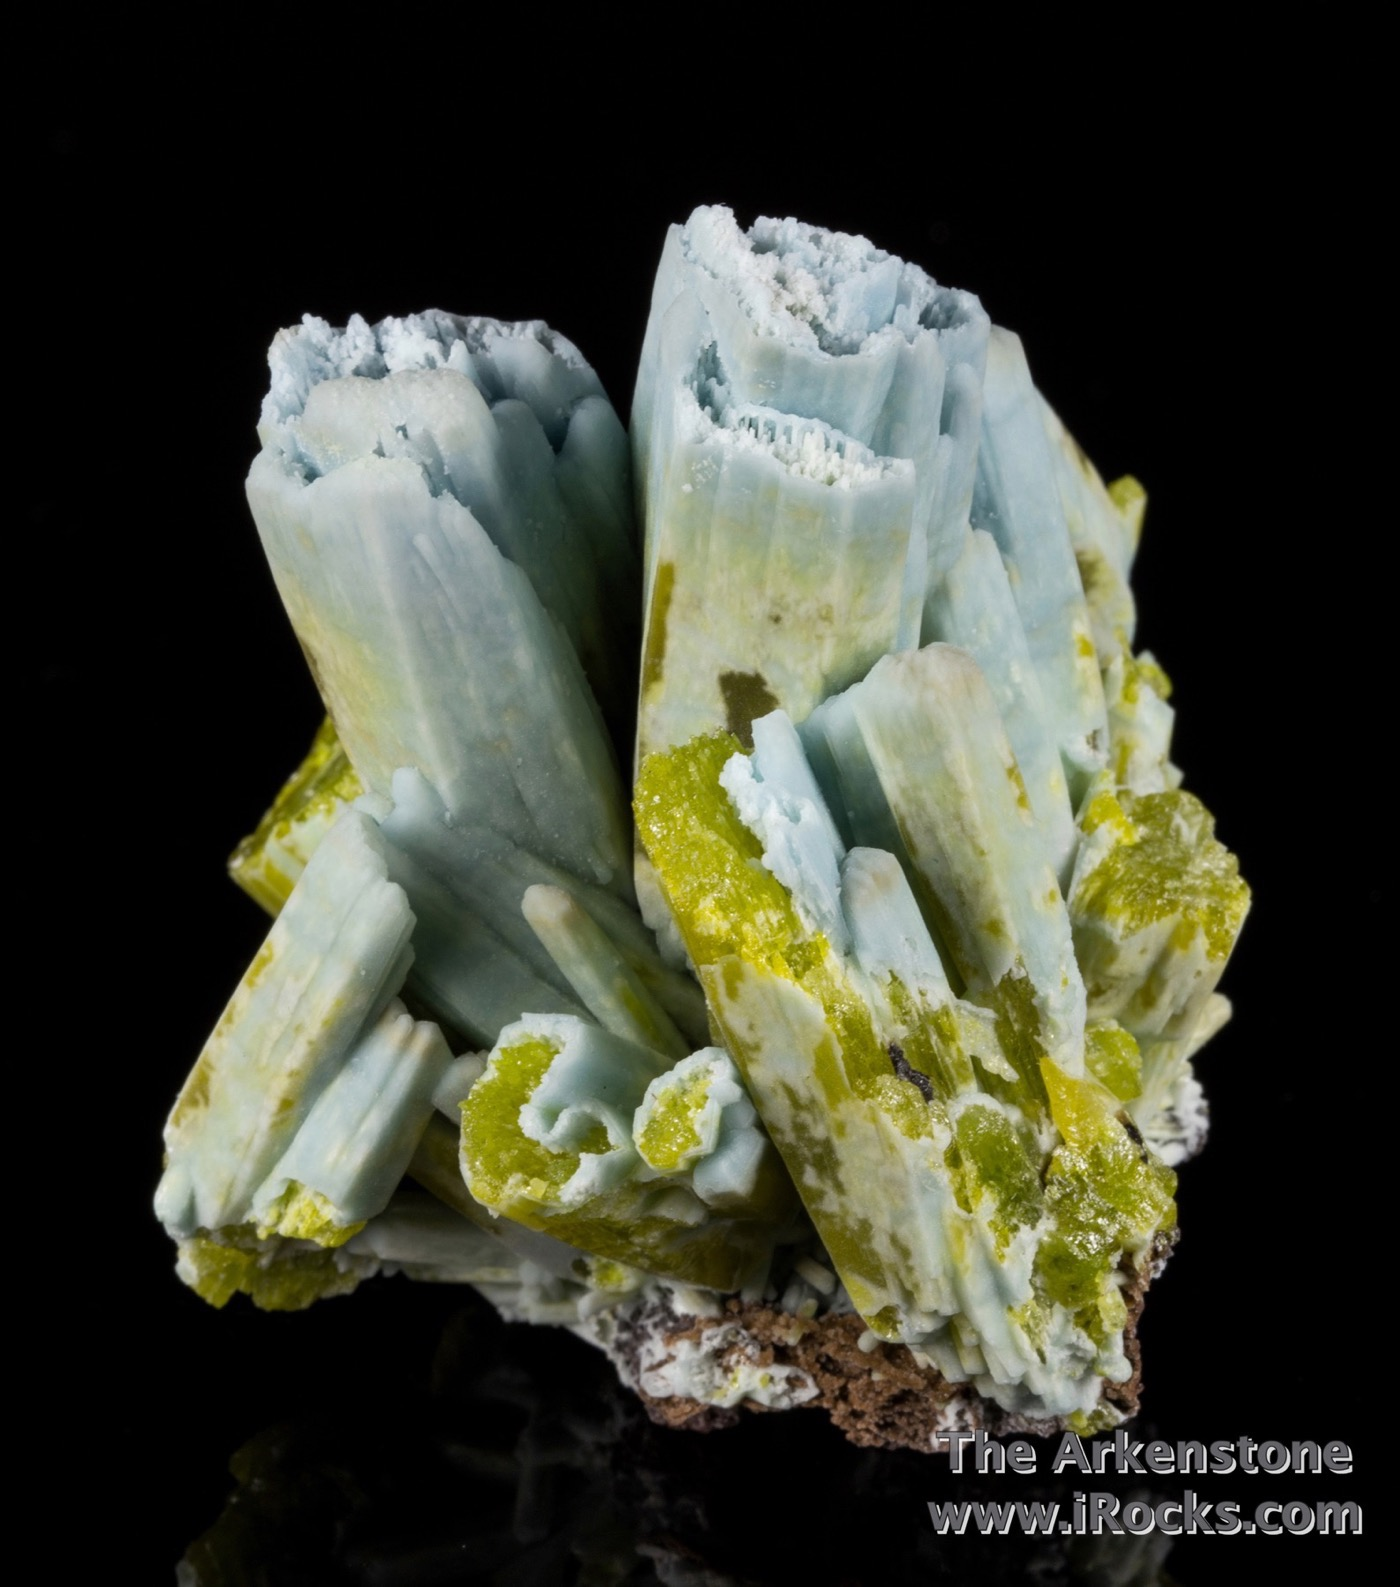 A robust specimen complete big fat crystals showing excellent color